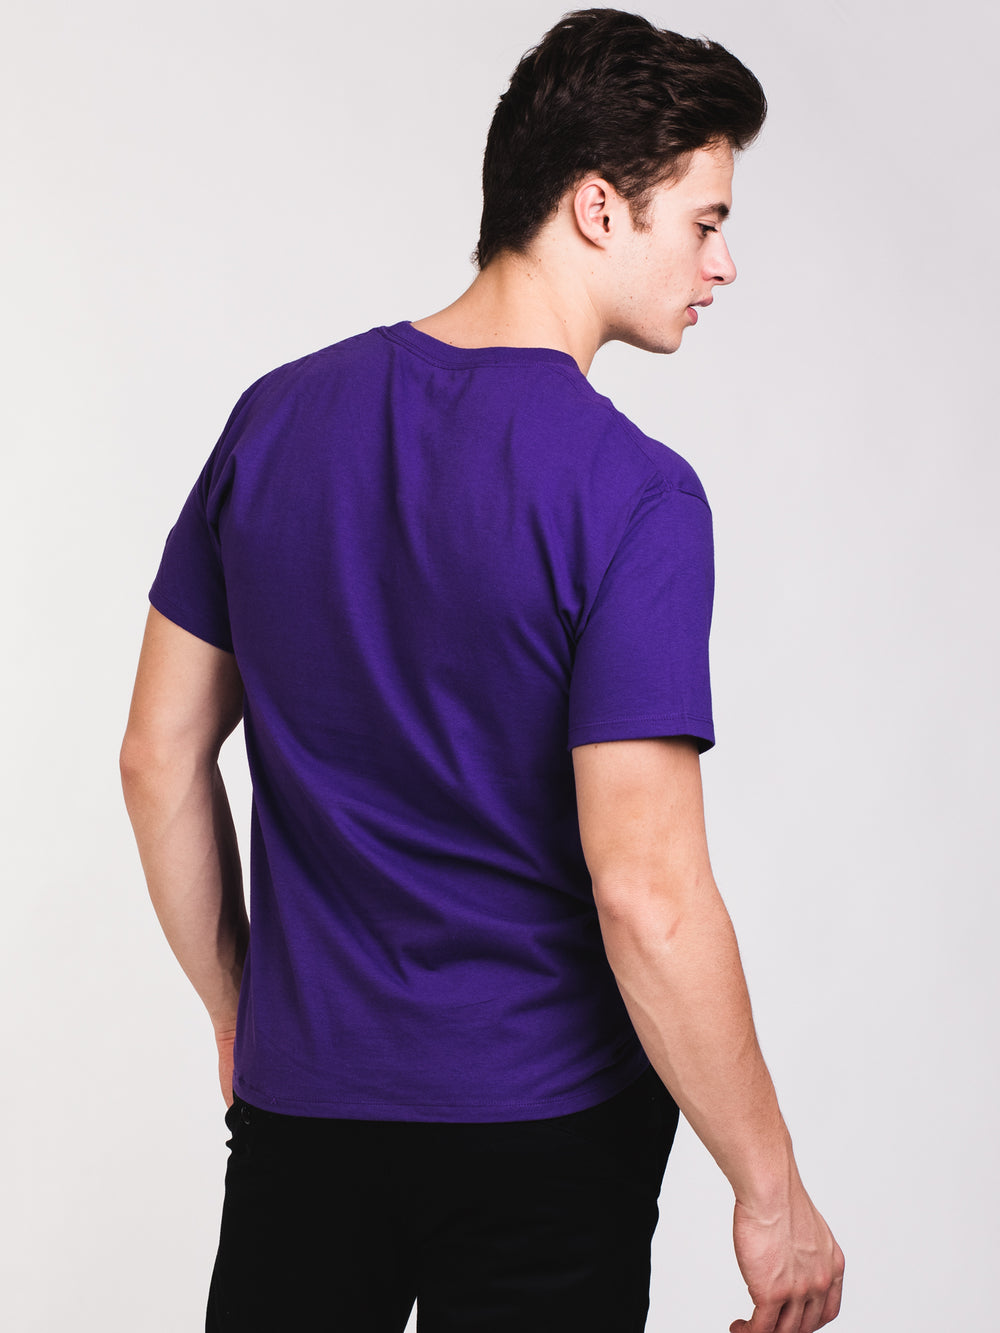 MENS GRAPHIC SHORT SLEEVE T-SHIRT - PURPLE